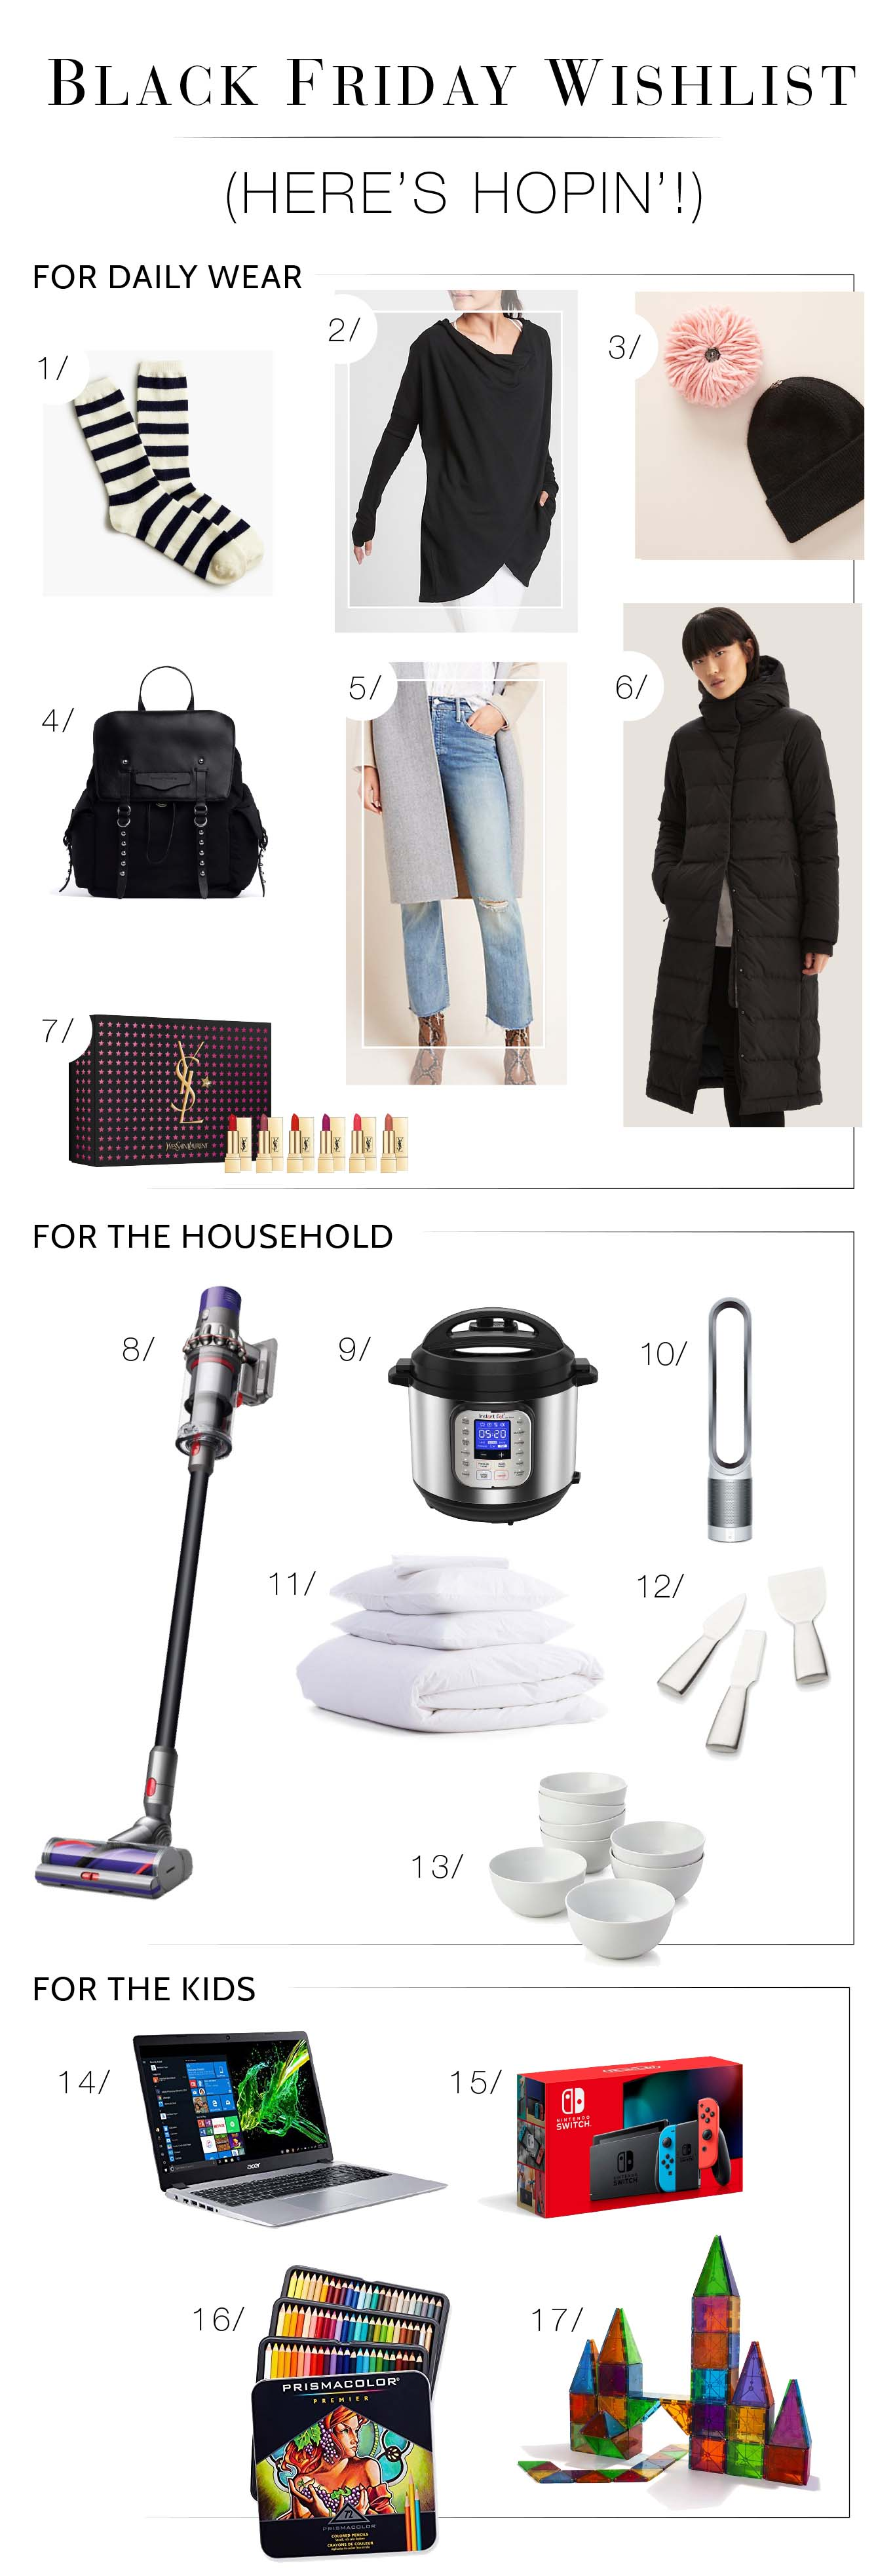 All things useful: daily outfits, household items & stuff for the kids. This Black Friday shopping wishlist is, uh, practical (but also fun:-). Here's hopin'.